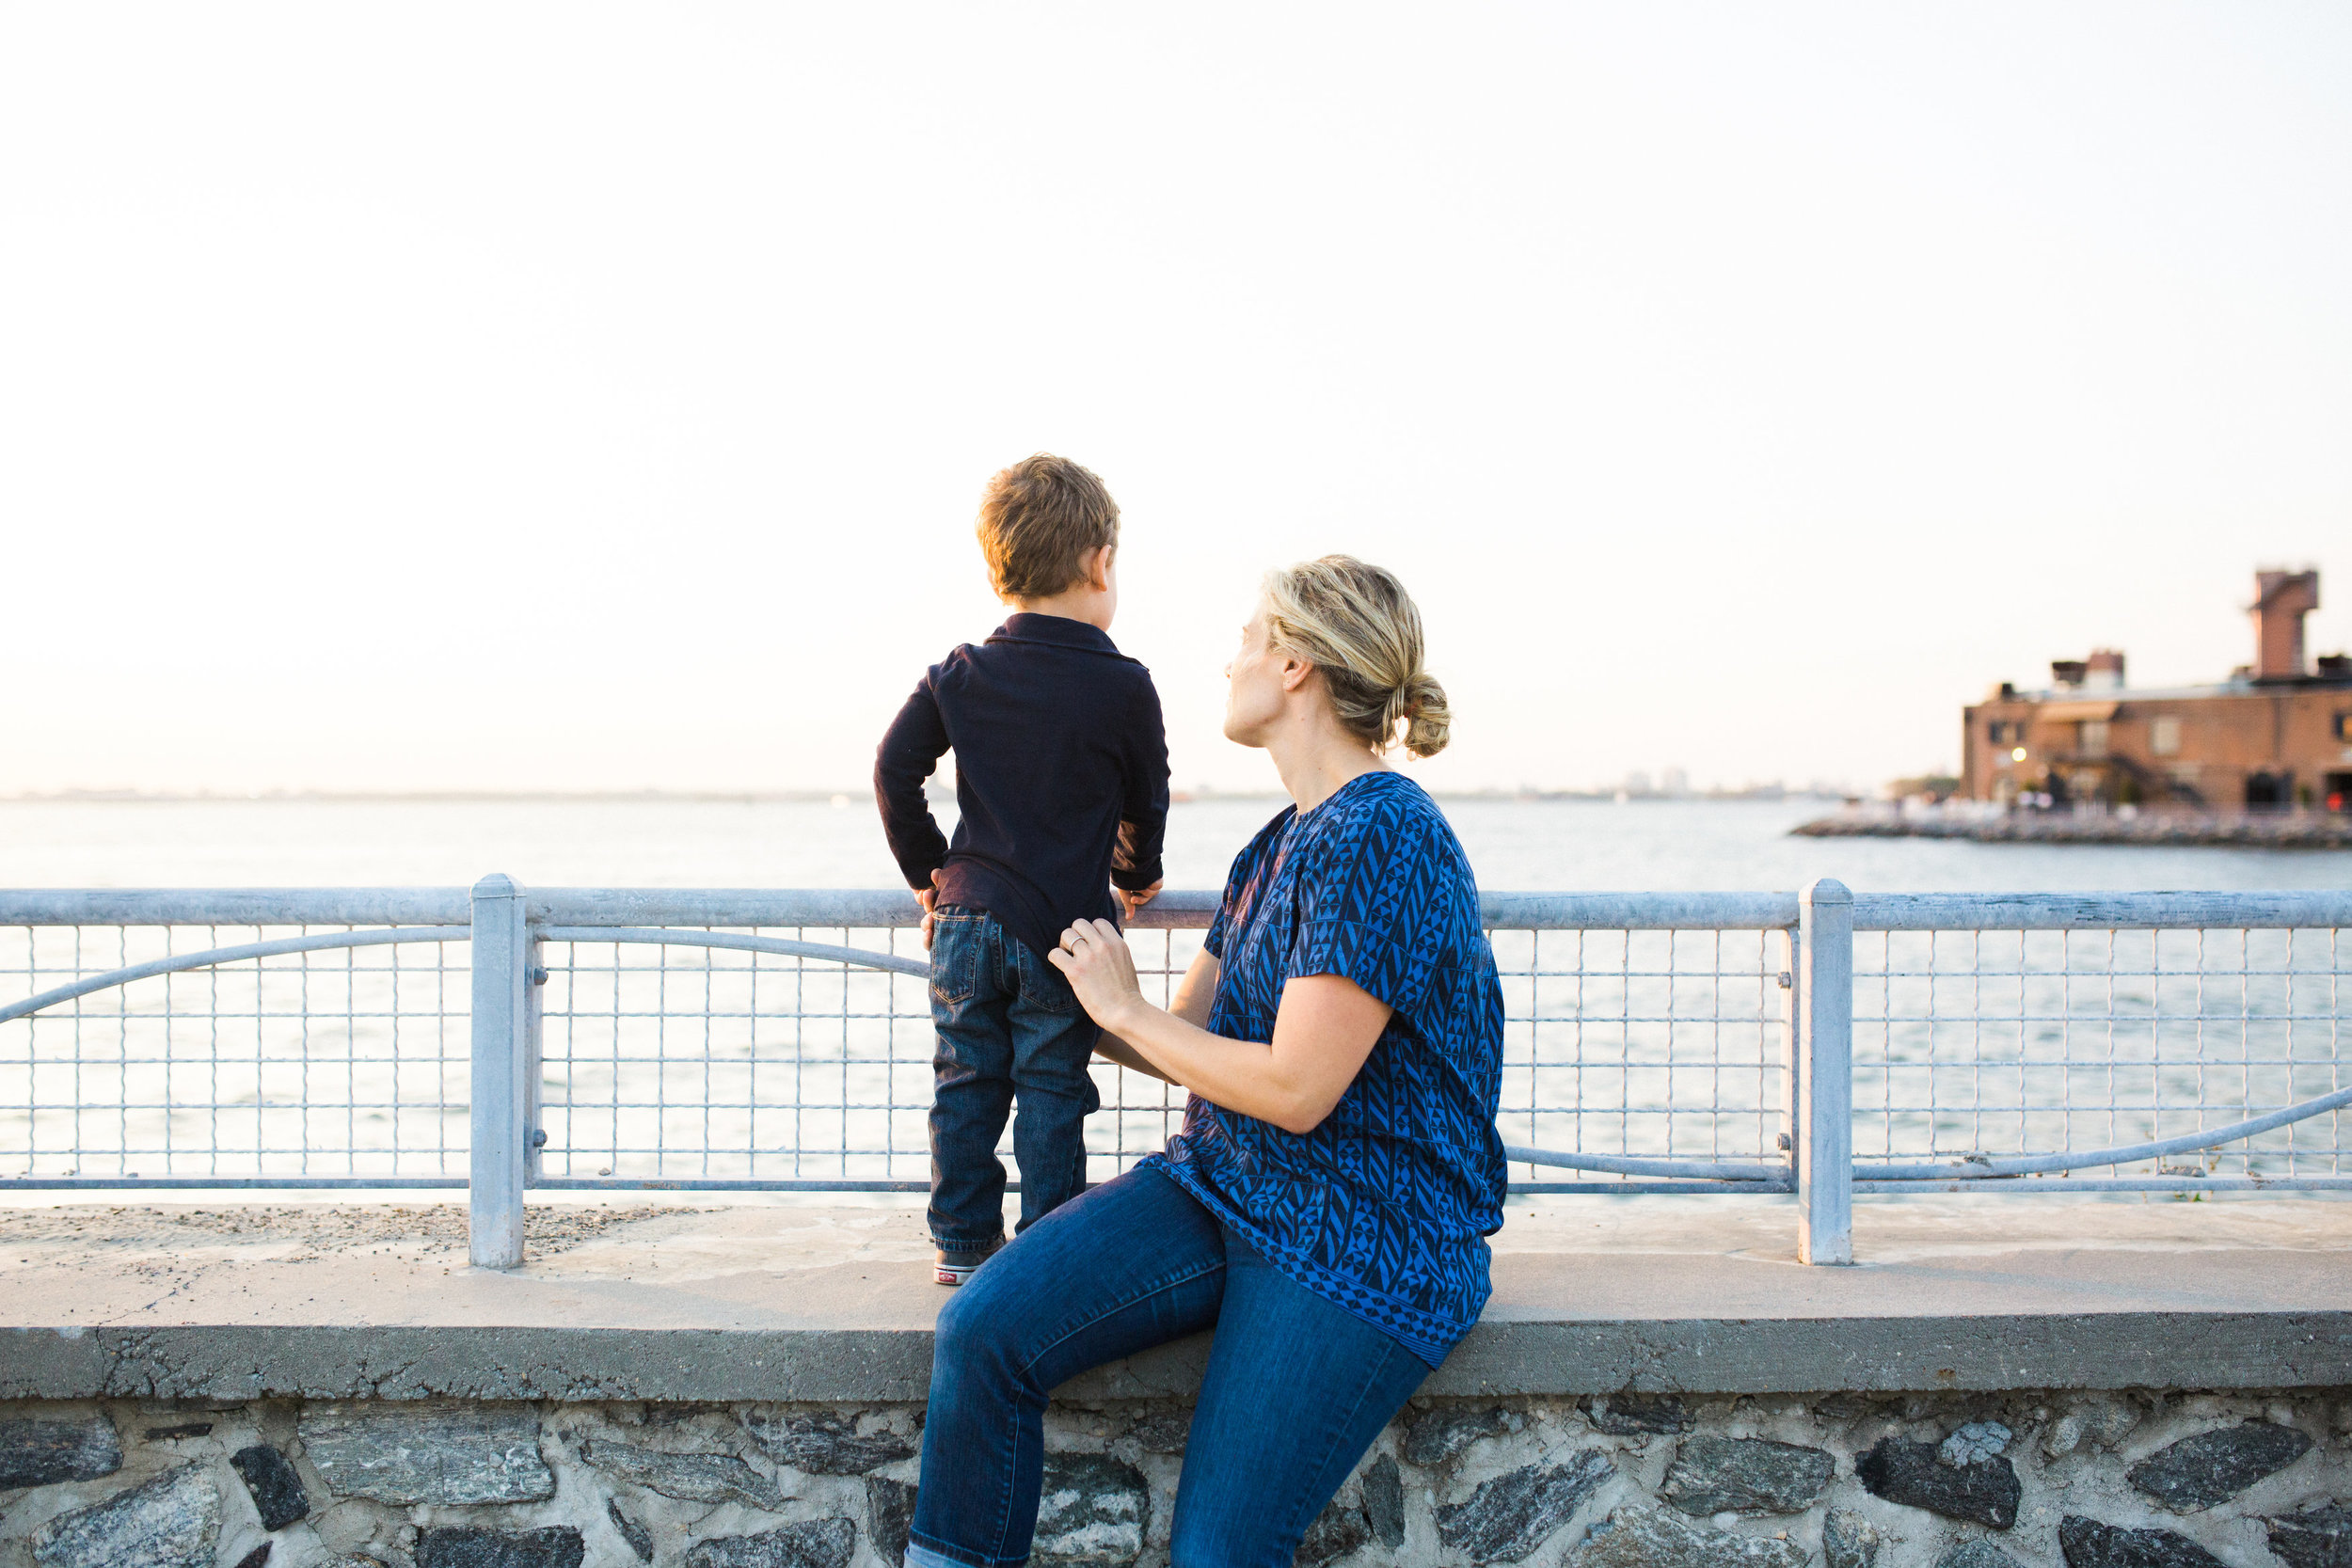 rothberg-family_brooklyn-red-hook-family-photography-1-8.jpg